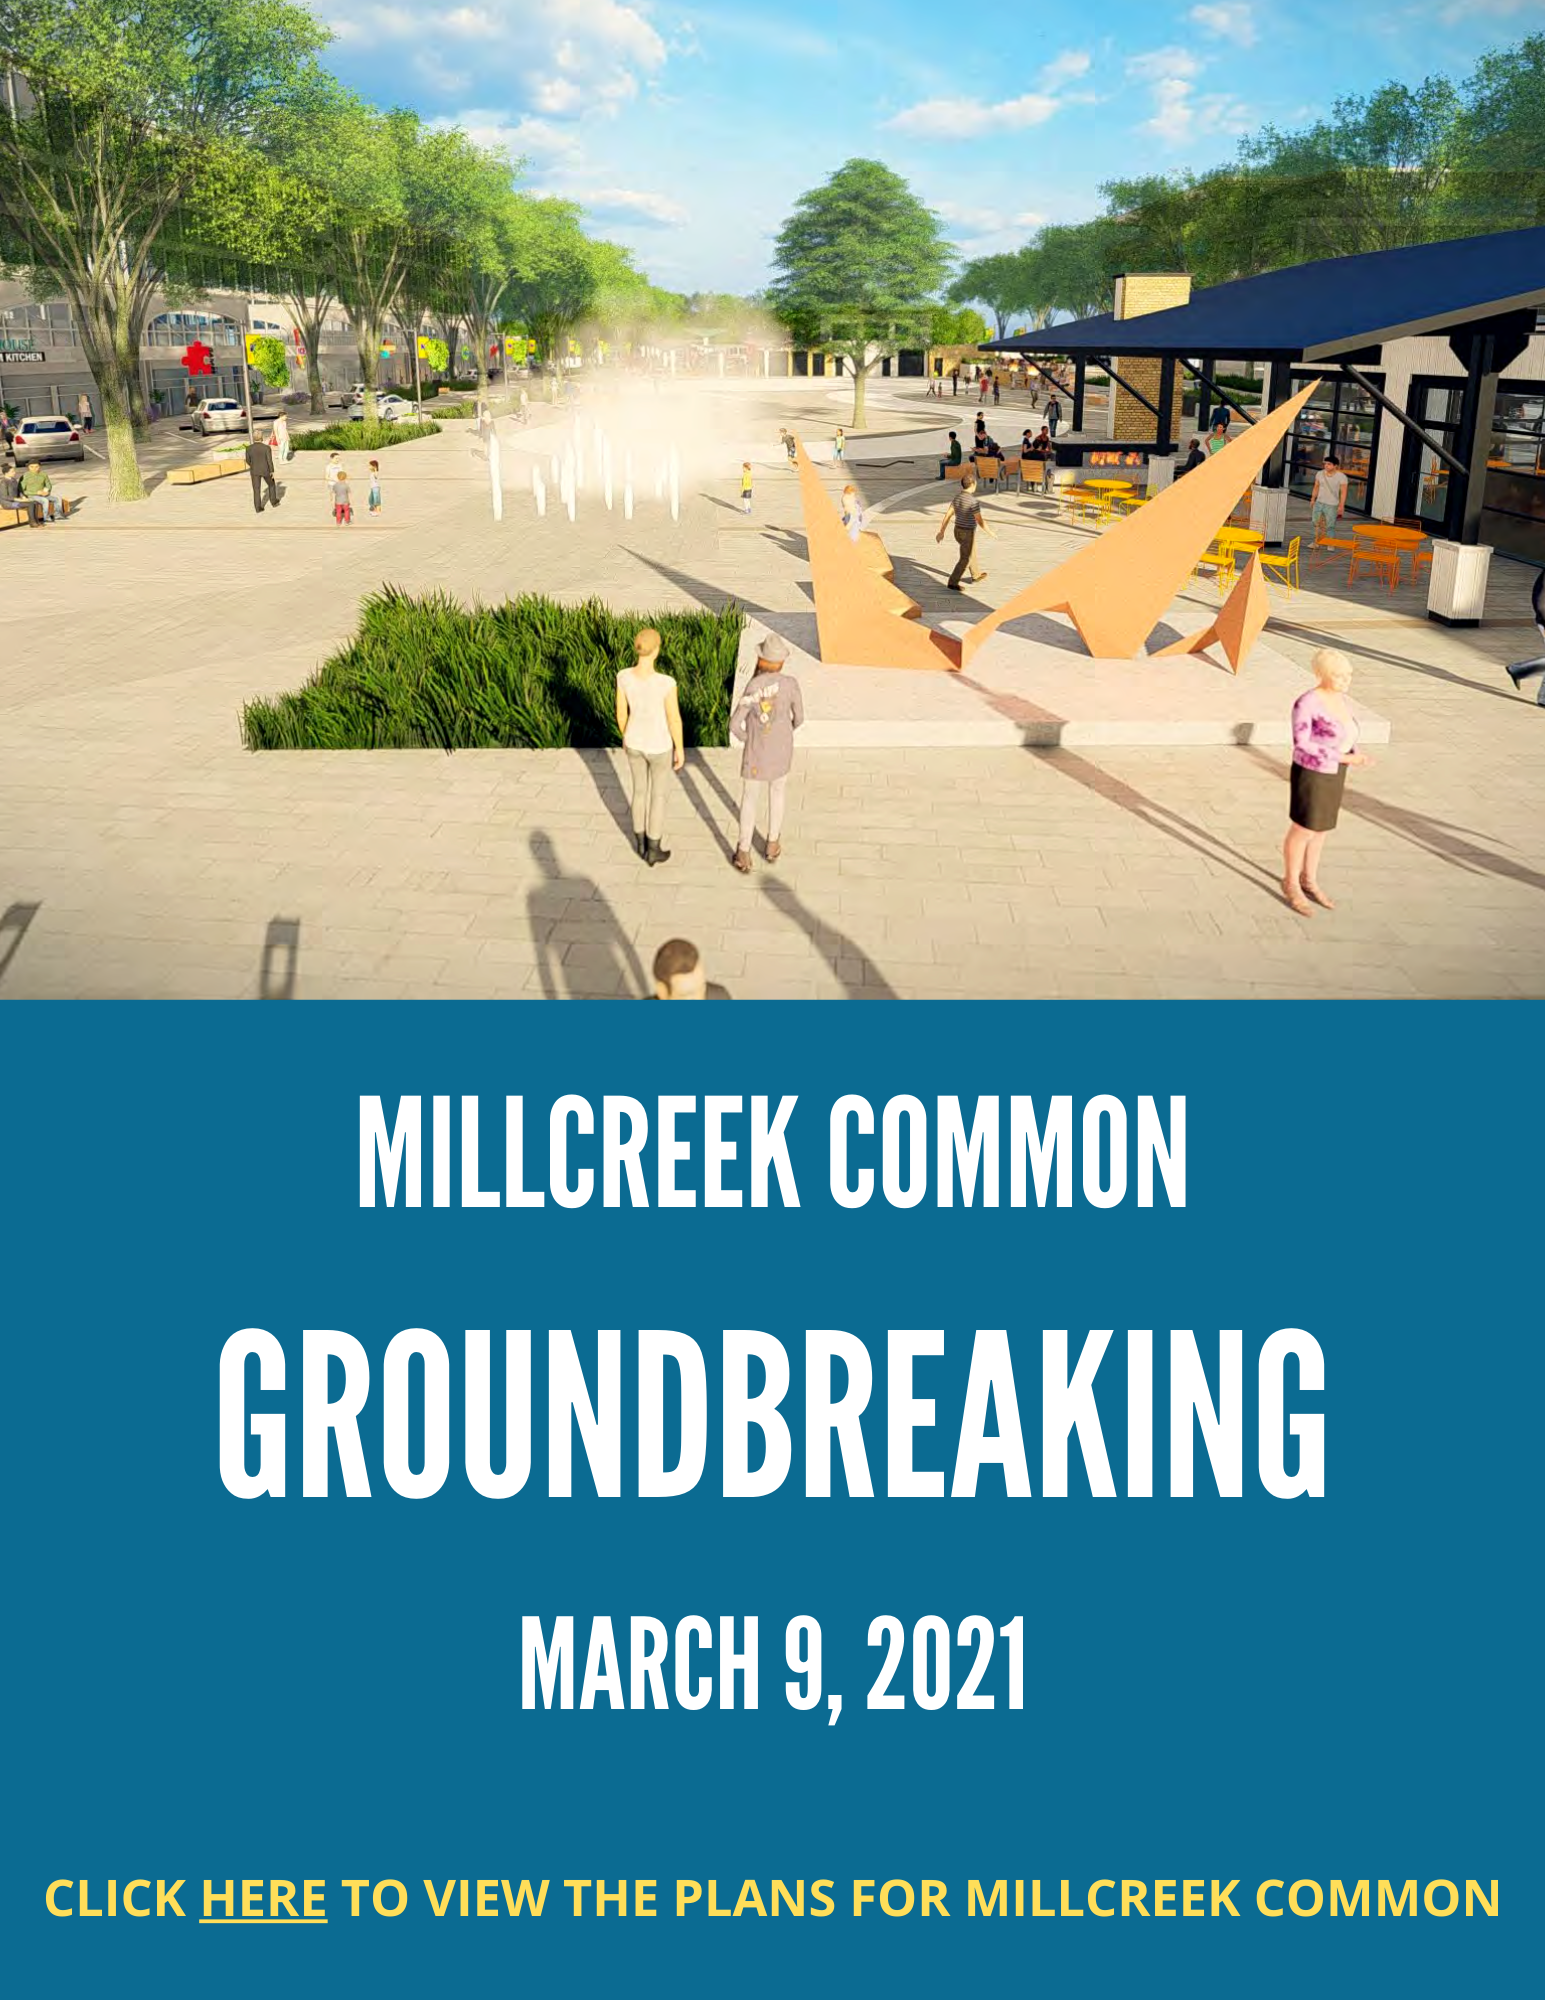 Millcreek Common Groundbreaking